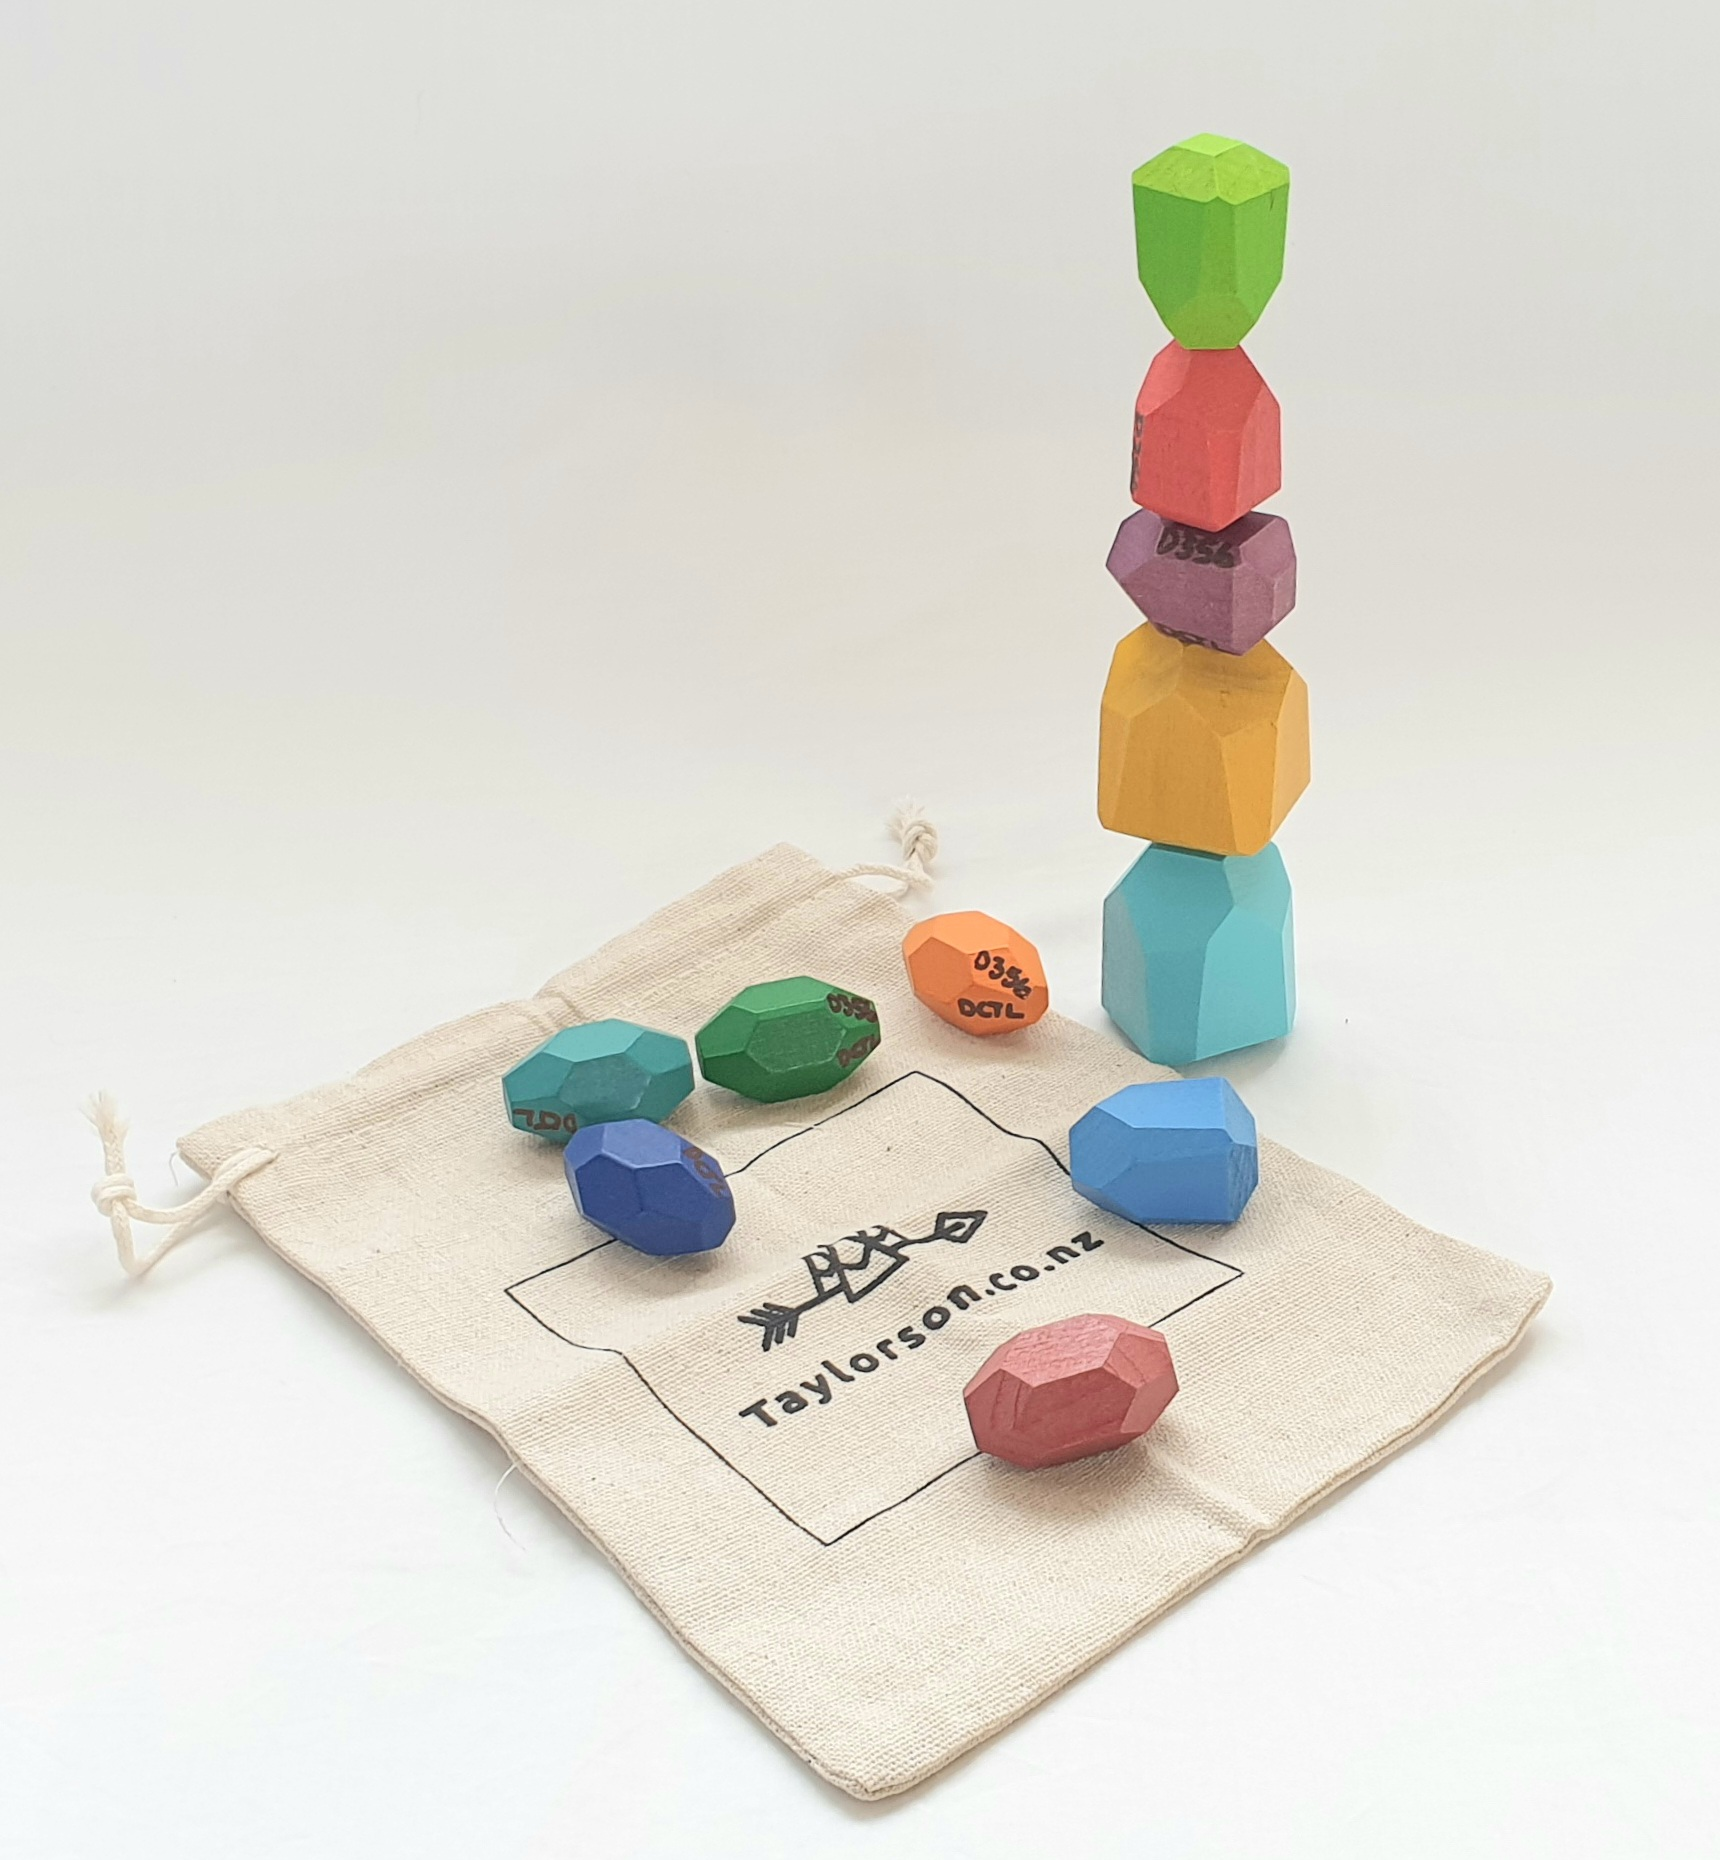 Taylerson Wooden Stacking Stones x11pc sponsored by Natalie Hales - Property Brokers photo